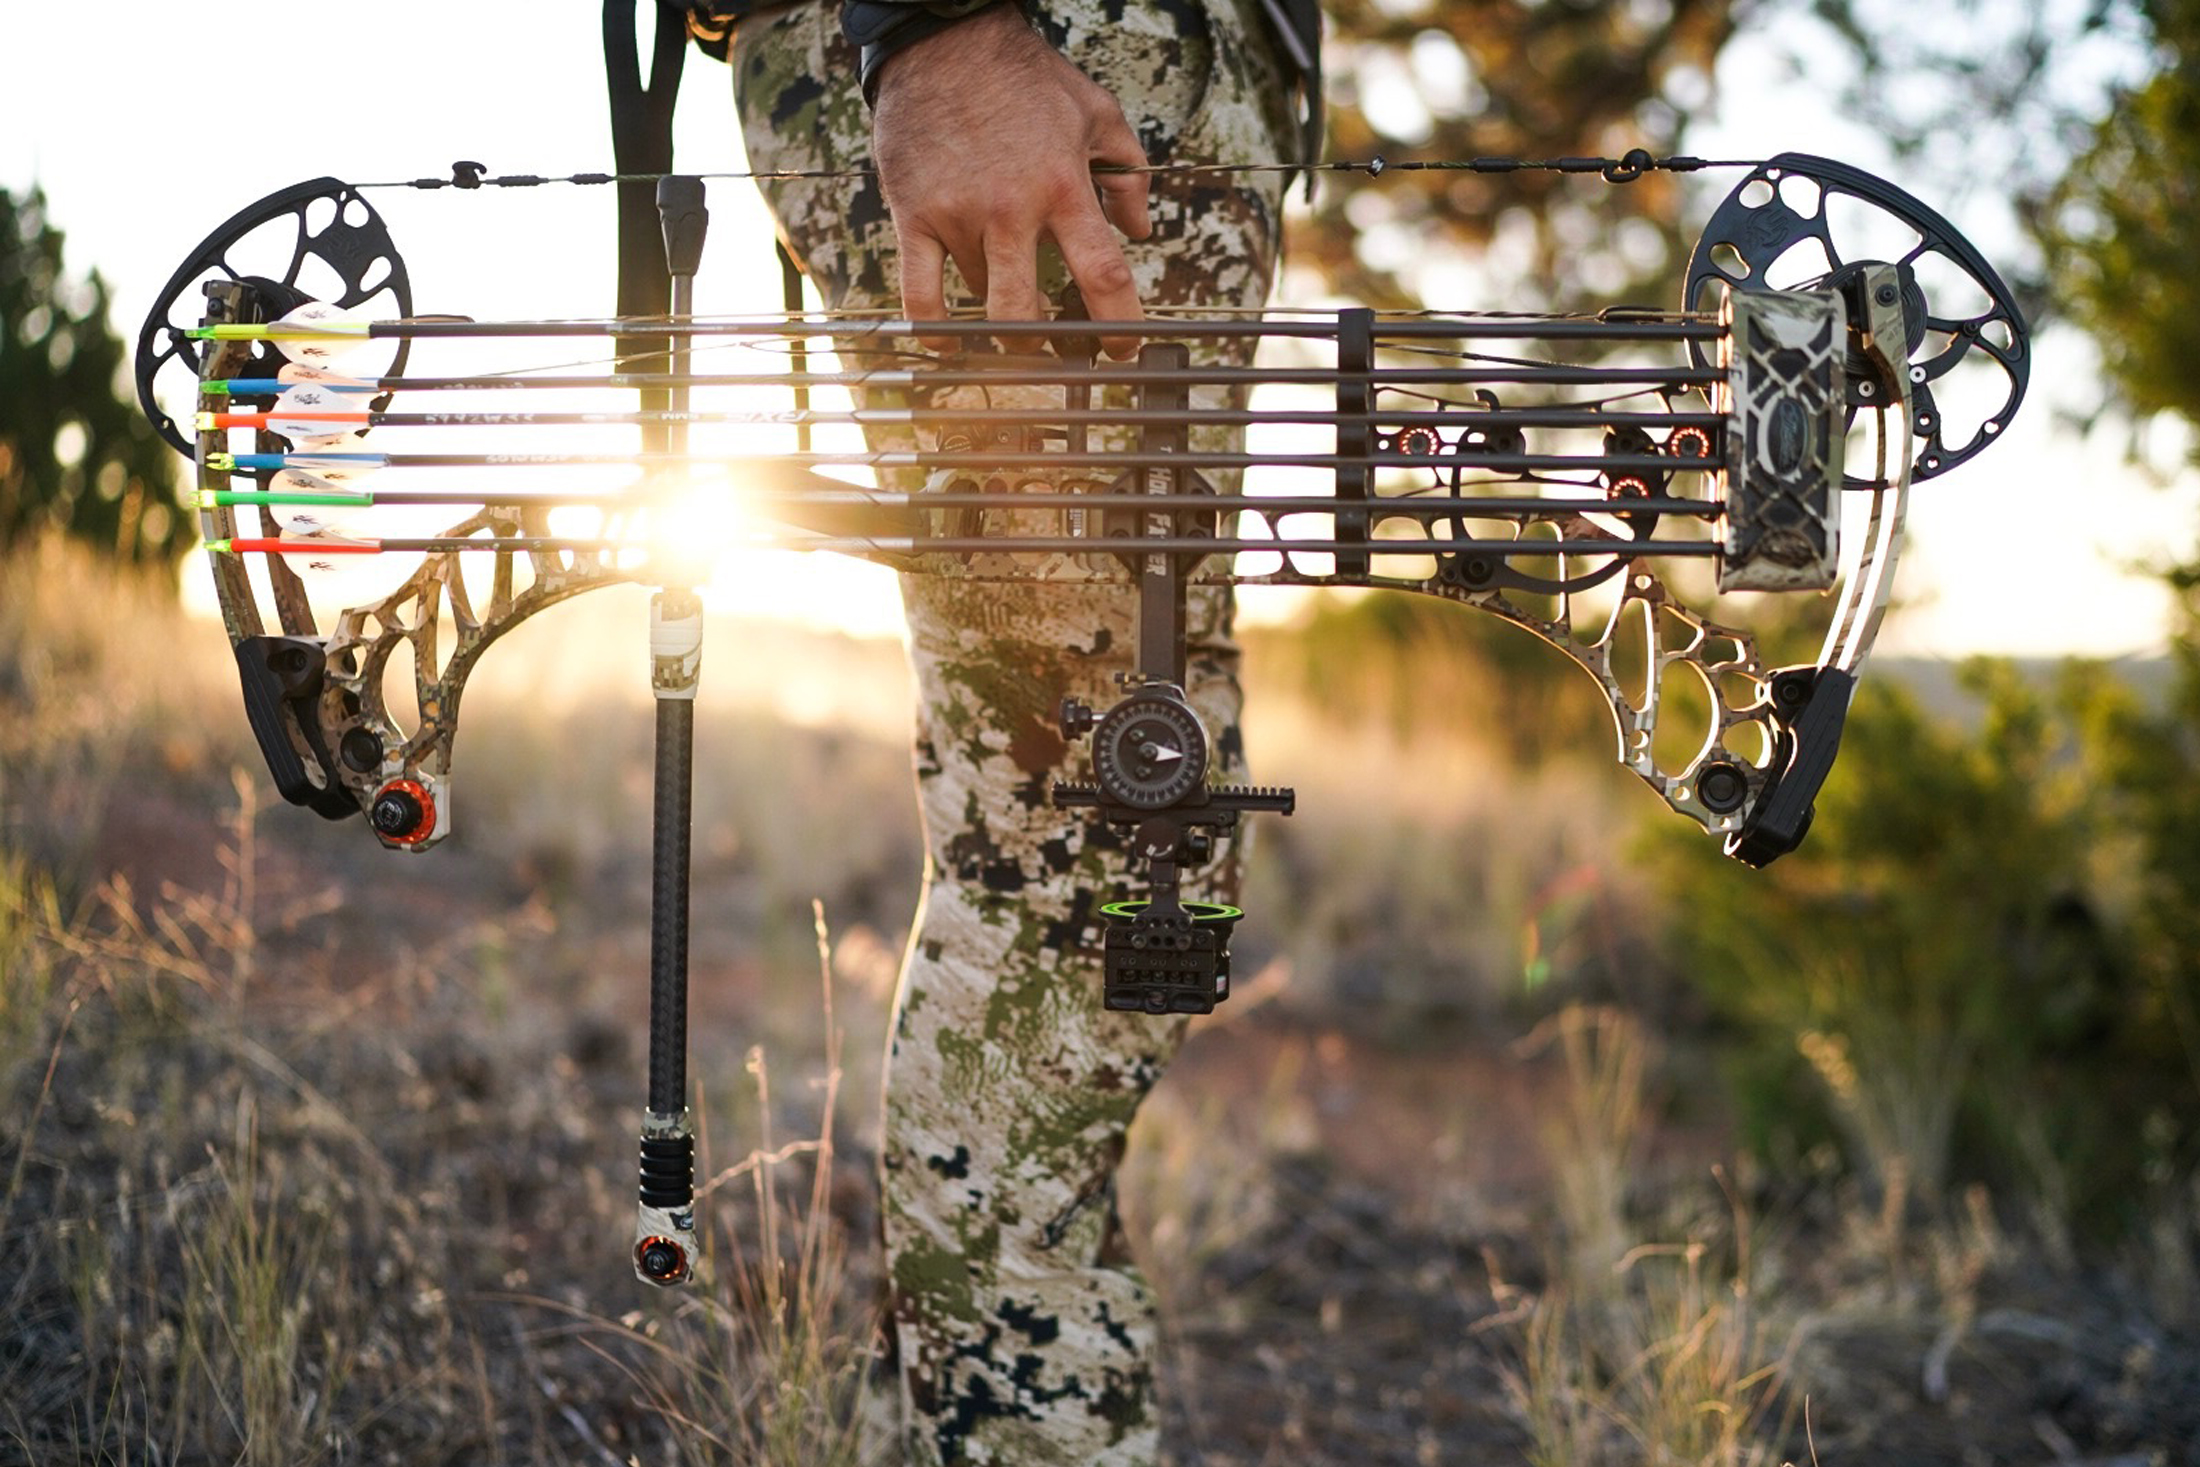 Field Test: 2019 Mathews Vertix Compound Bow Review | GearJunkie